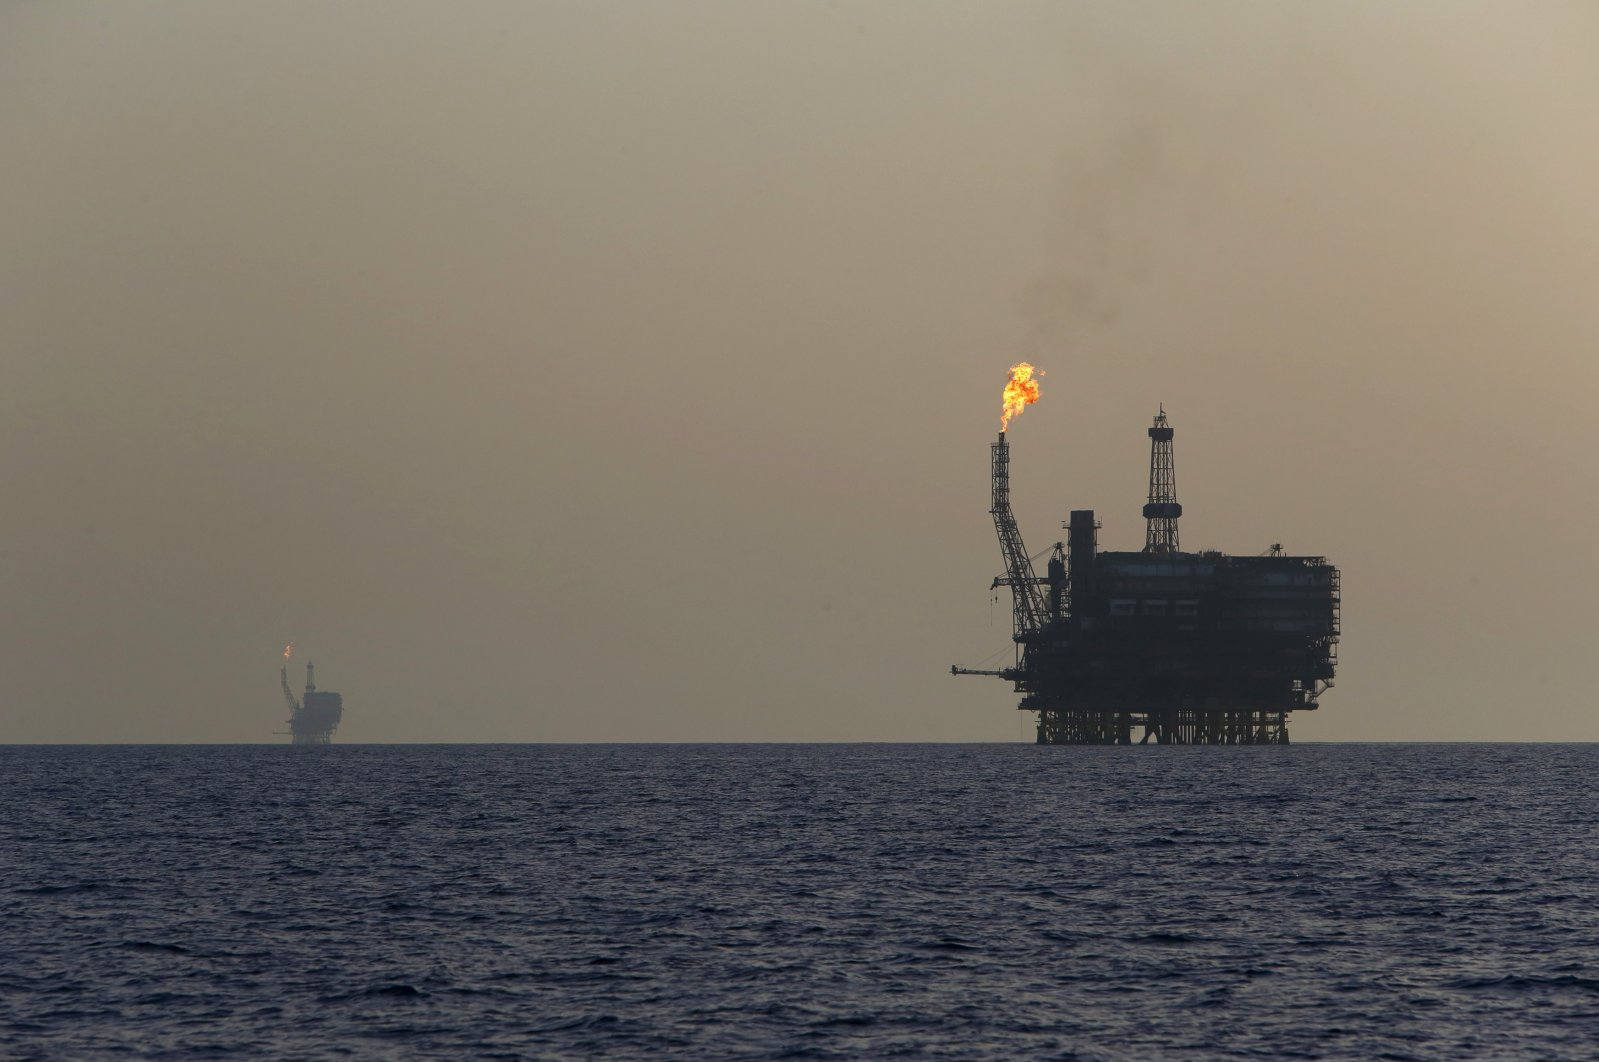 Offshore oil platforms are seen at the Bouri Oil Field off the coast of Libya, Aug. 3, 2015. (Reuters Photo)